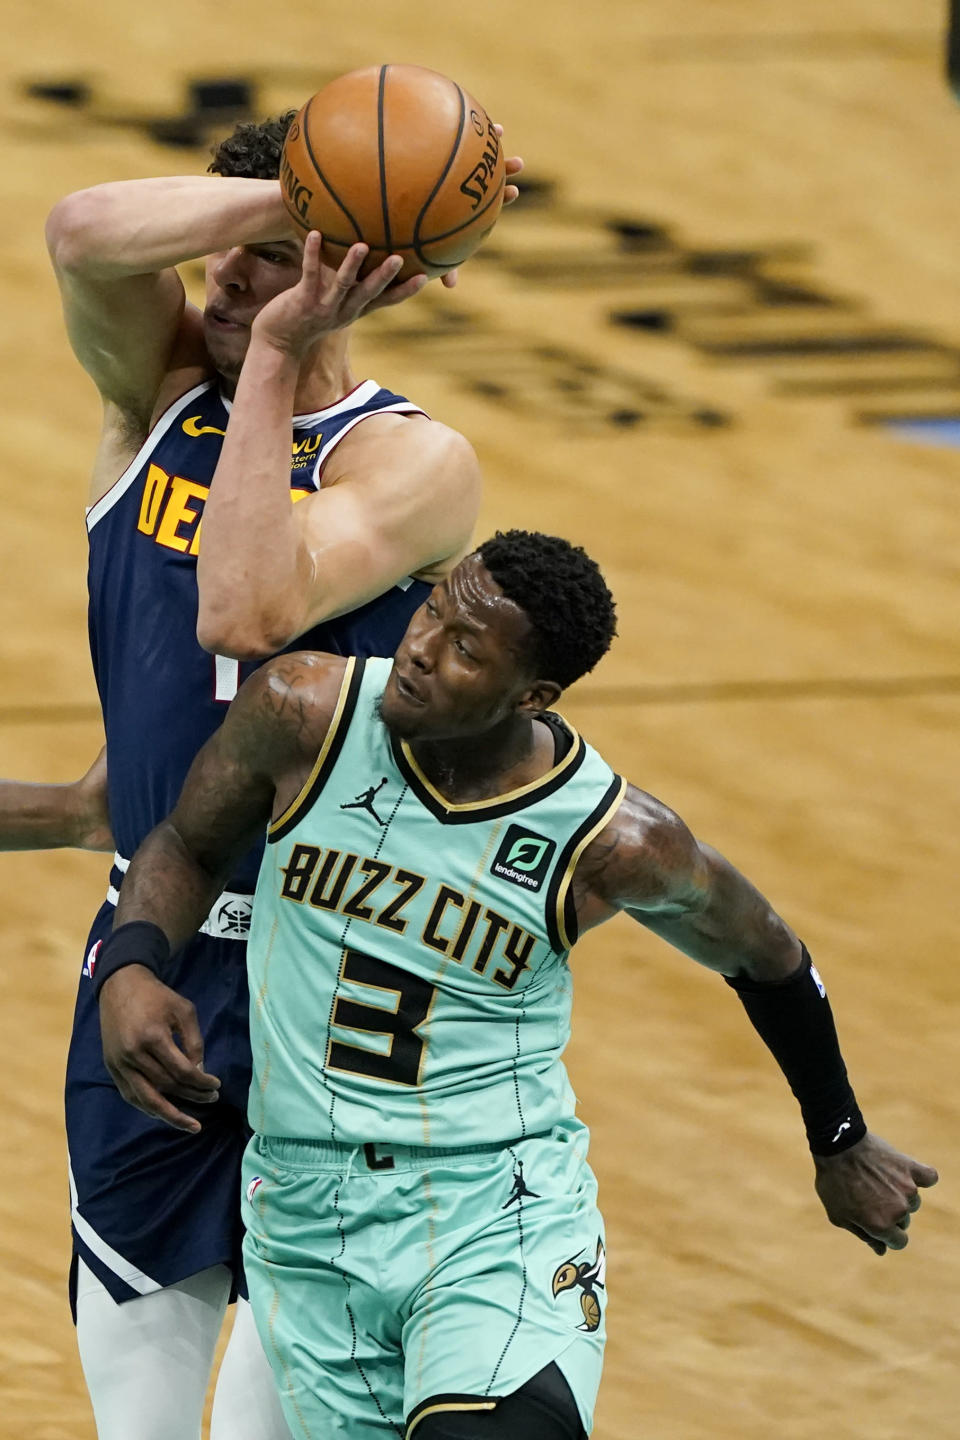 Denver Nuggets forward Michael Porter Jr. is fouled by Charlotte Hornets guard Terry Rozier during the first half of an NBA basketball game on Tuesday, May 11, 2021, in Charlotte, N.C. (AP Photo/Chris Carlson)